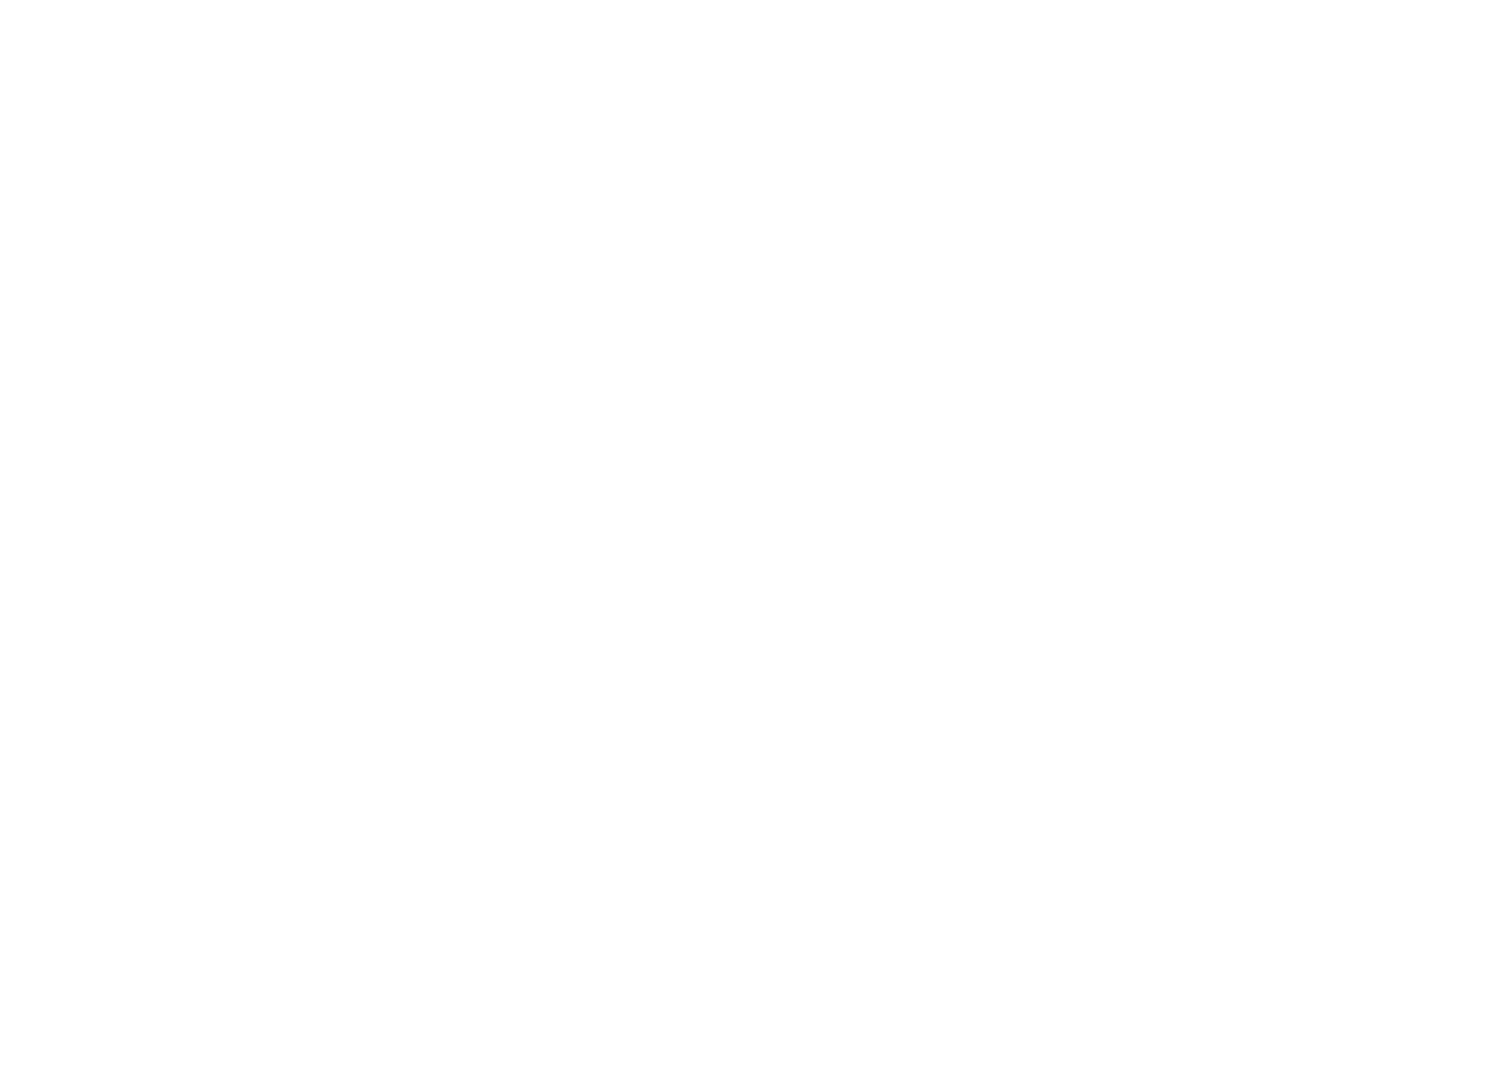 aha collective